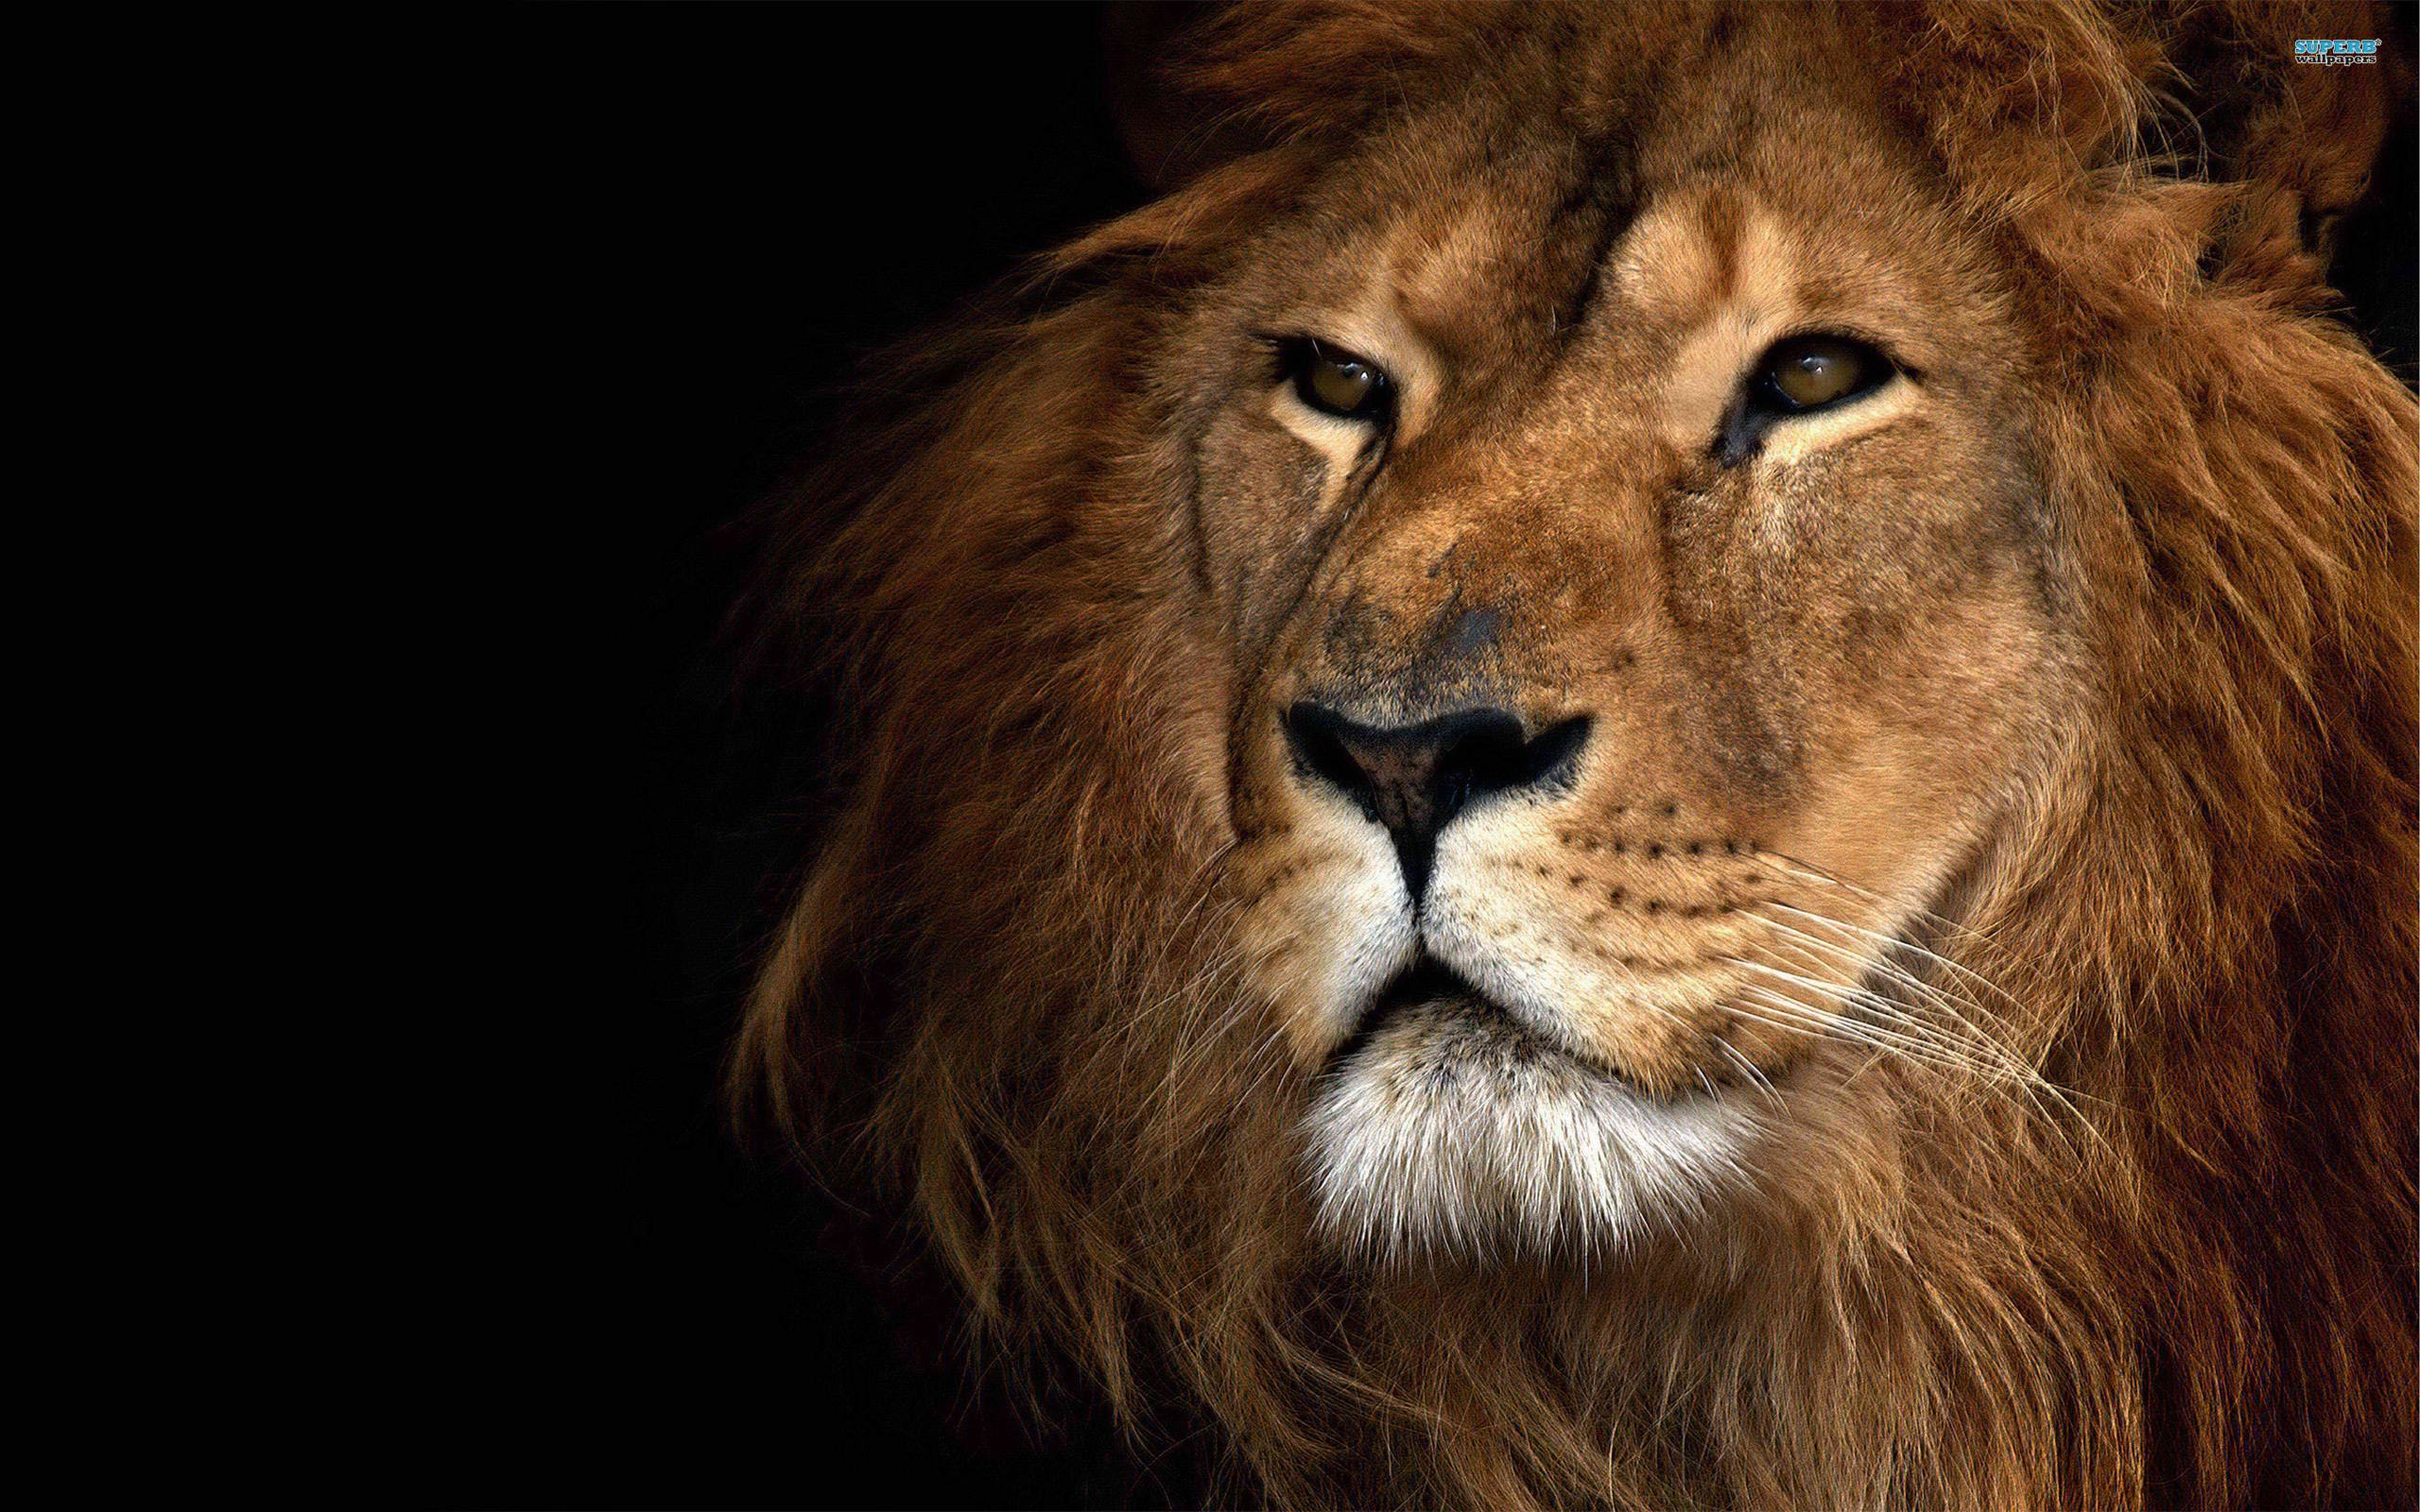 Lion Wallpaper Download Free · Air Force Wallpapers | Best Desktop ...